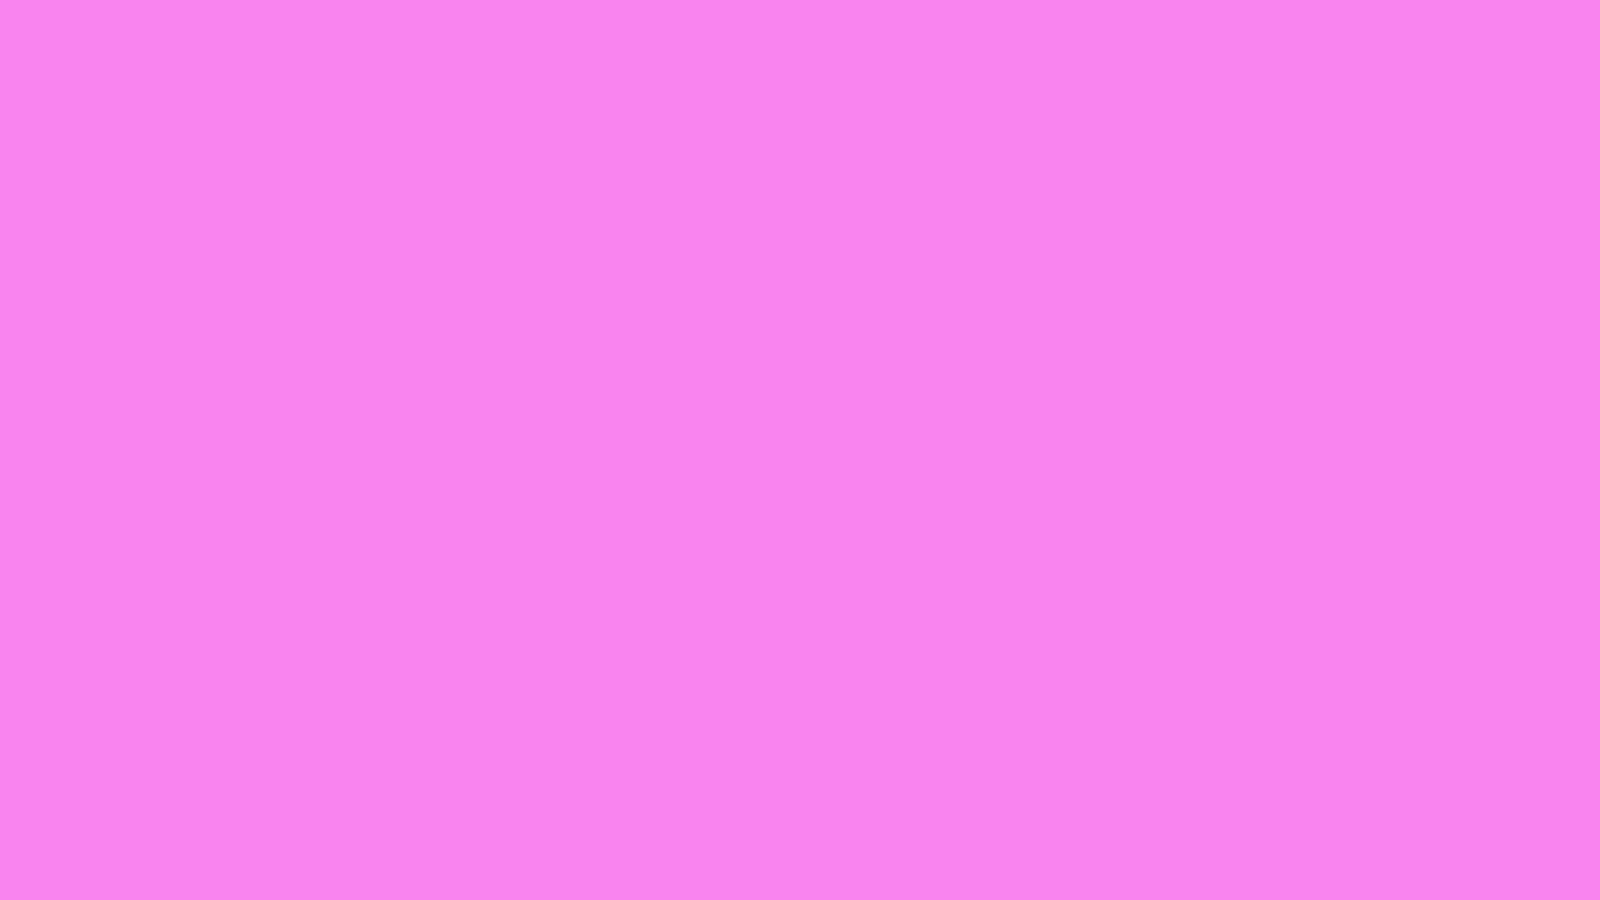 1600x900 Light Fuchsia Pink Solid Color Background